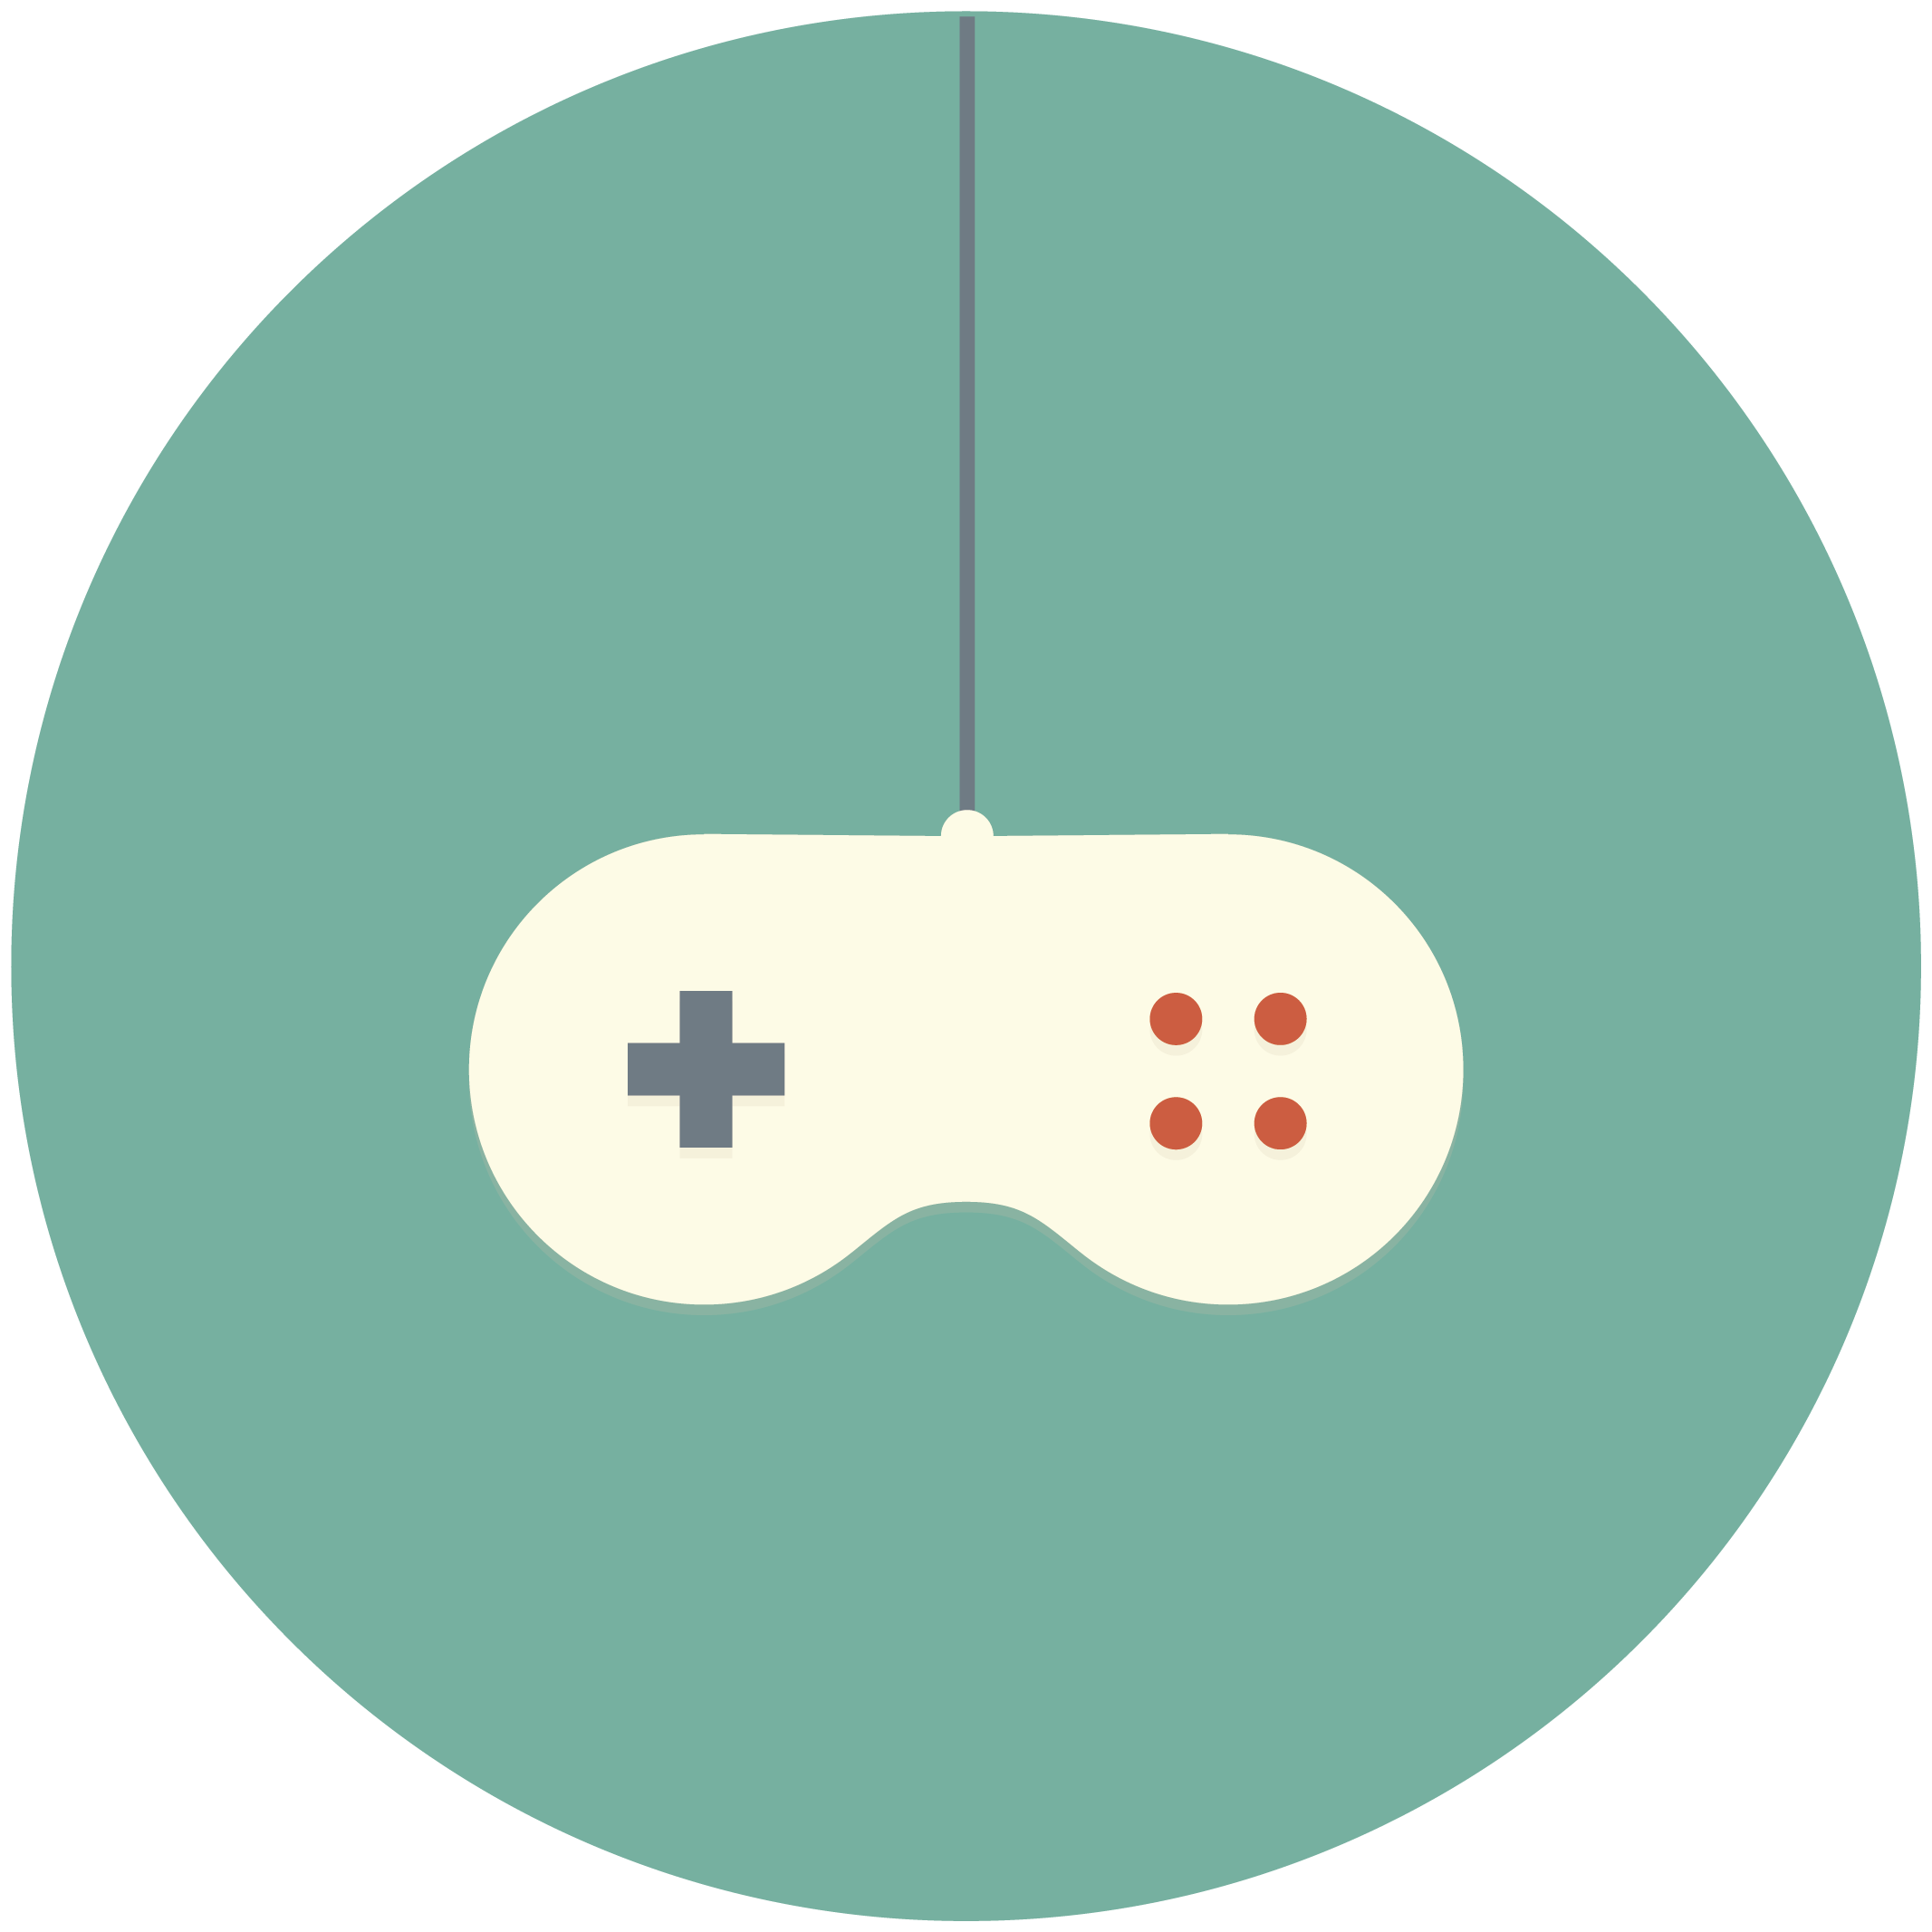 Free gameing icon download. Game clipart pc game